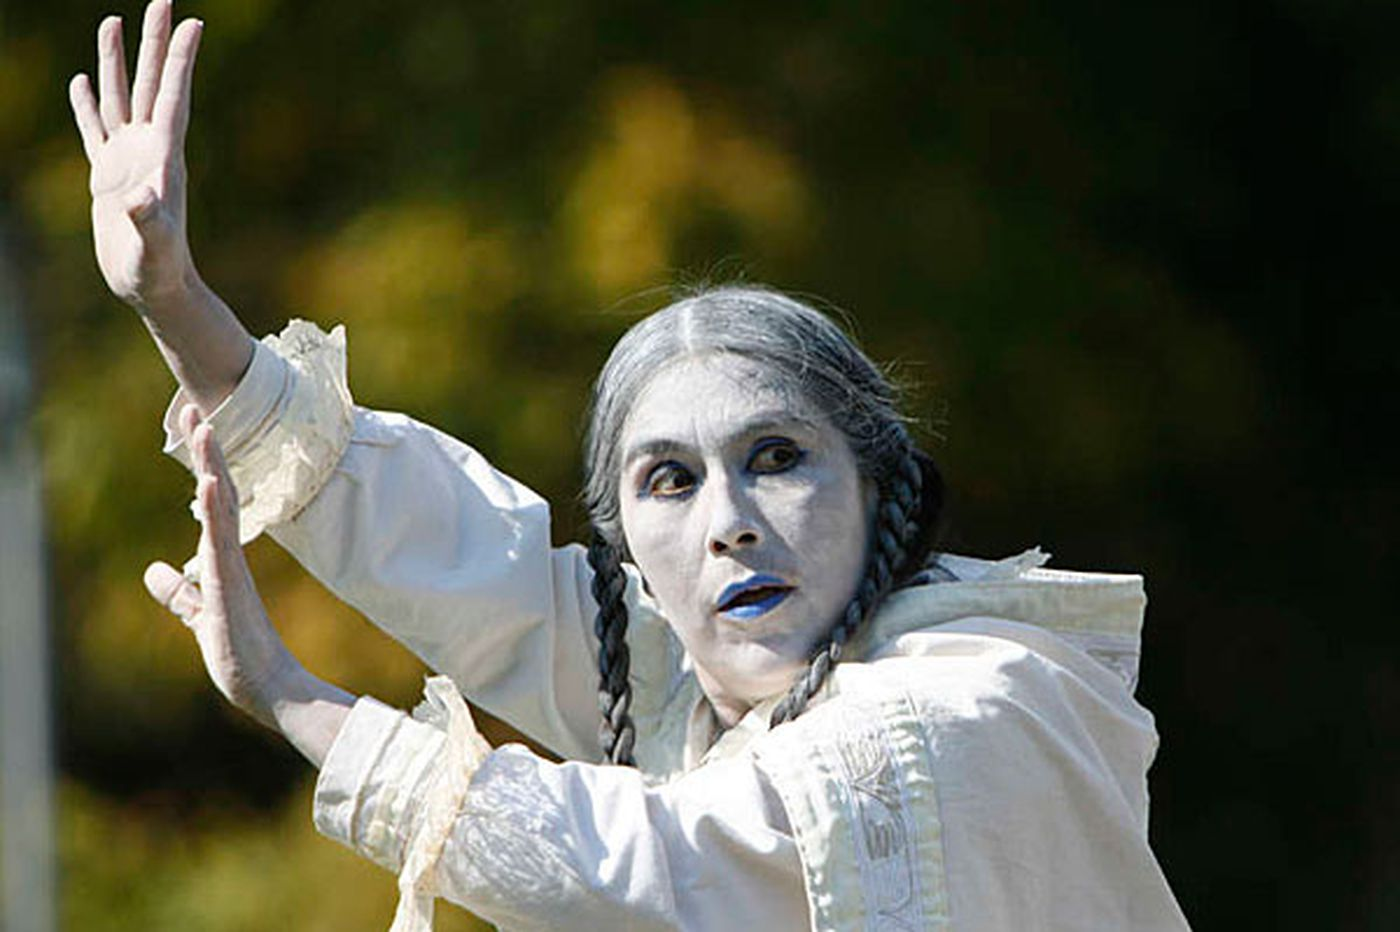 Folklore Project event Saturday examines arts as peace-makers